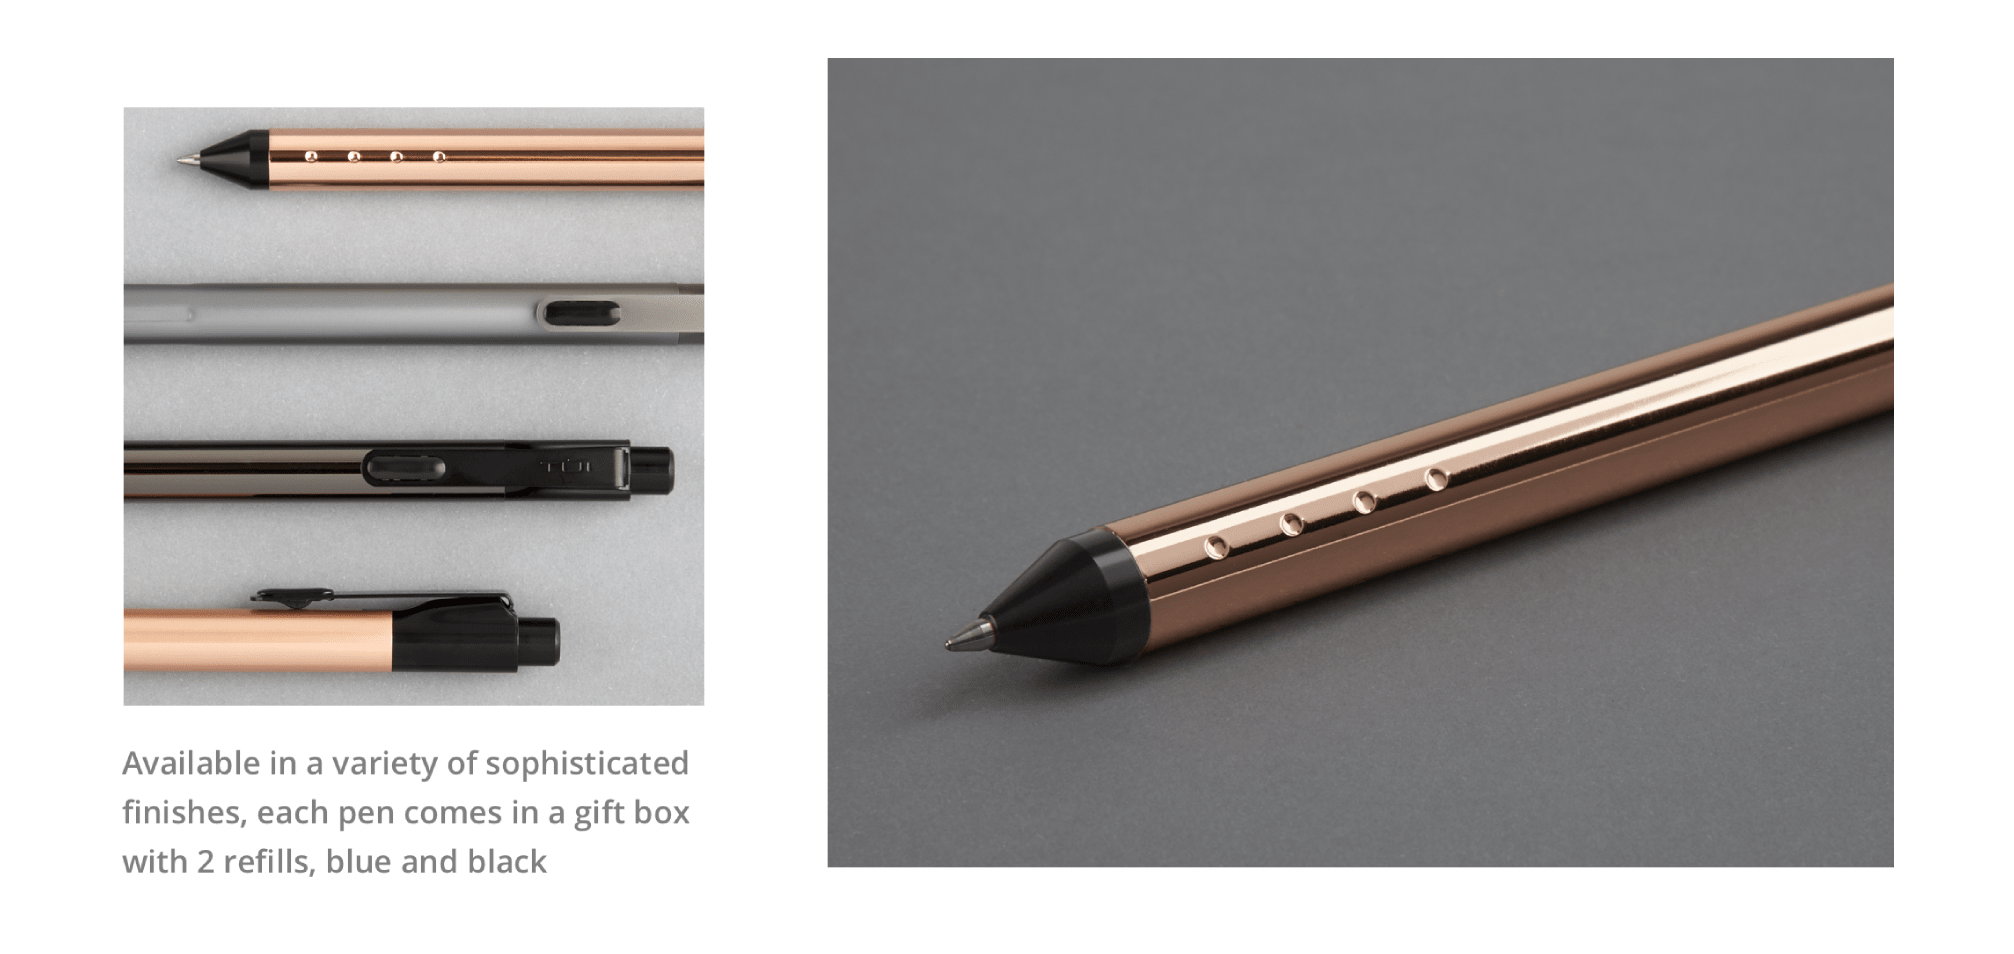 Available in a variety of sophisticated finishes, each pen comes in a gift box with 2 refills, blue and black